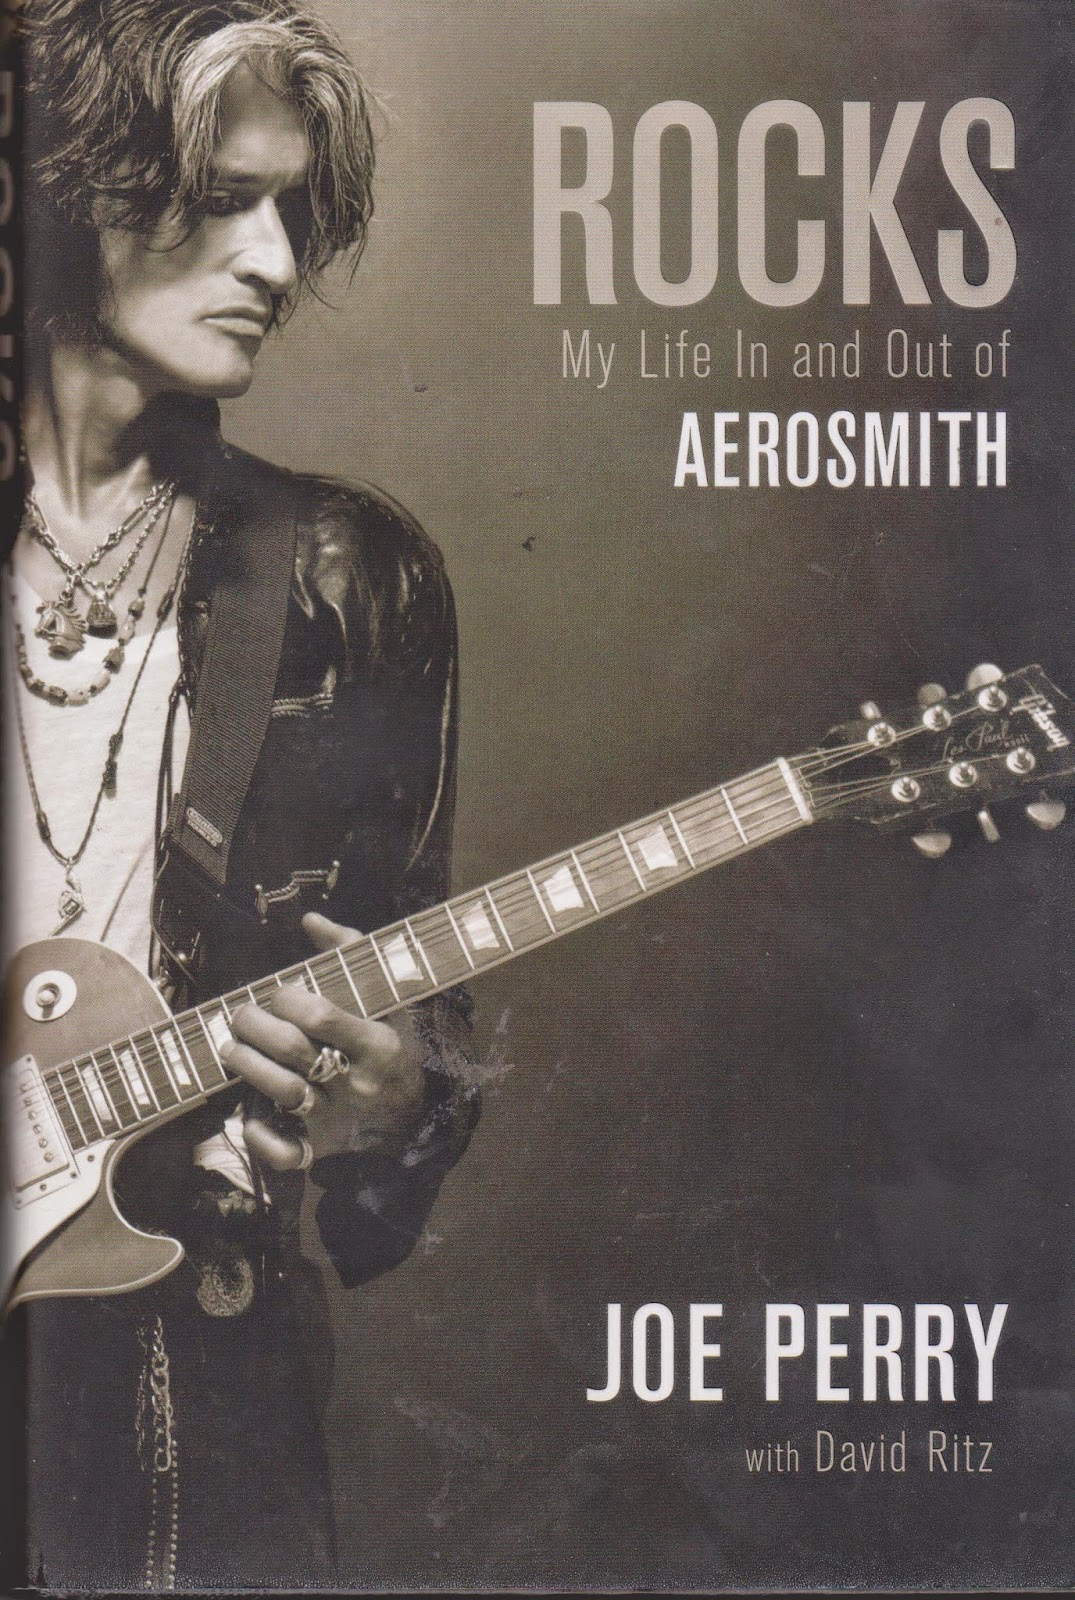 Rocks My Life In and Out Of Aerosmith Joe Perry